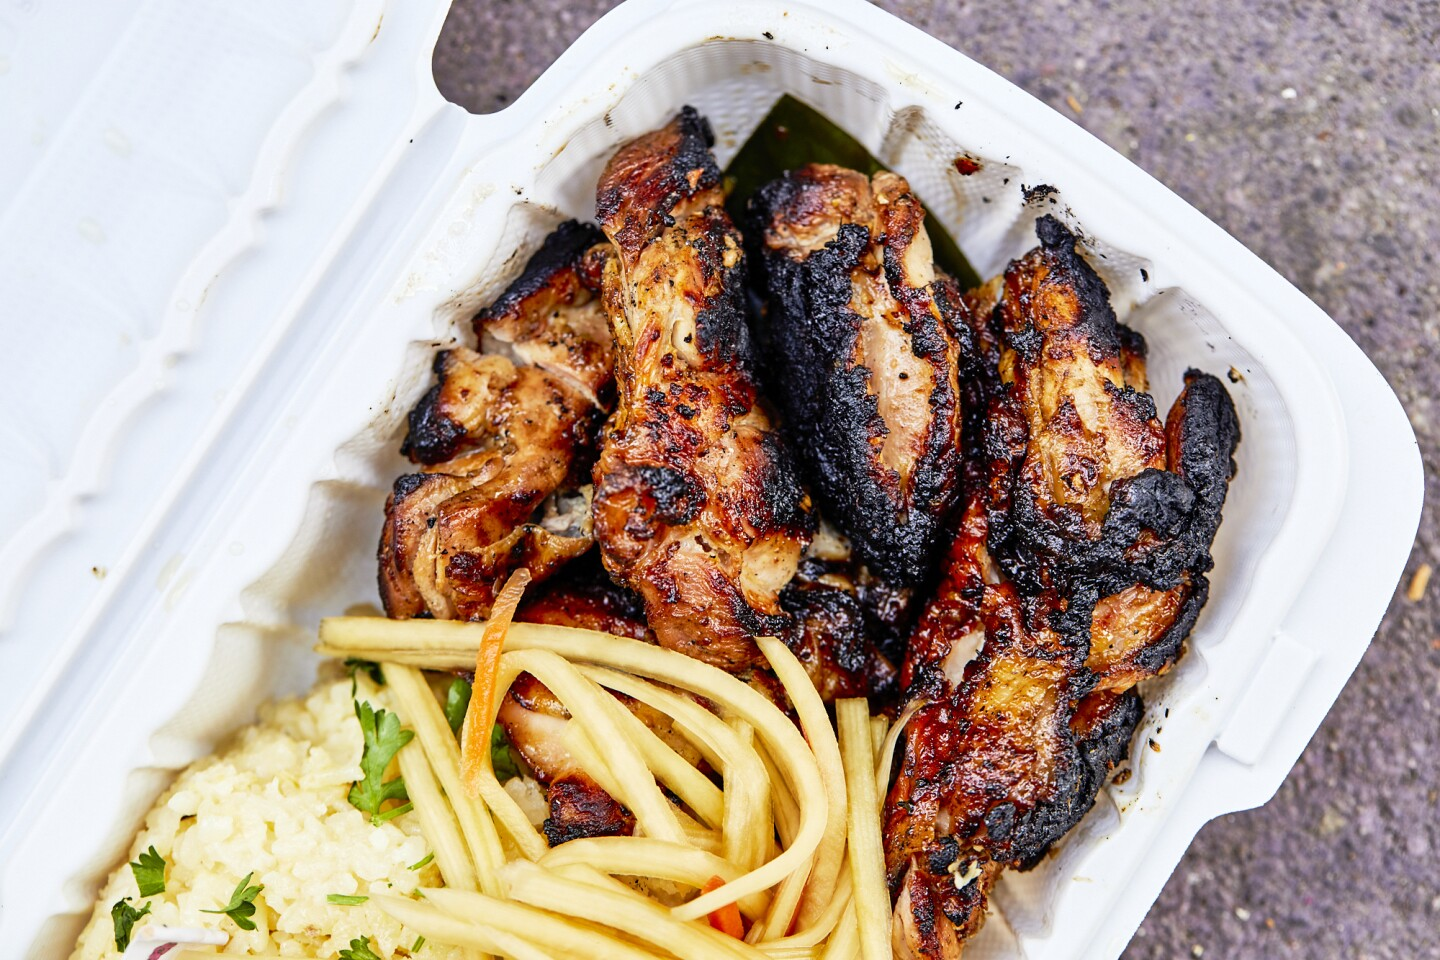 Chicken inasal, grilled chicken, from Mano Po over a bed of rice and packaged in a white to-go box.